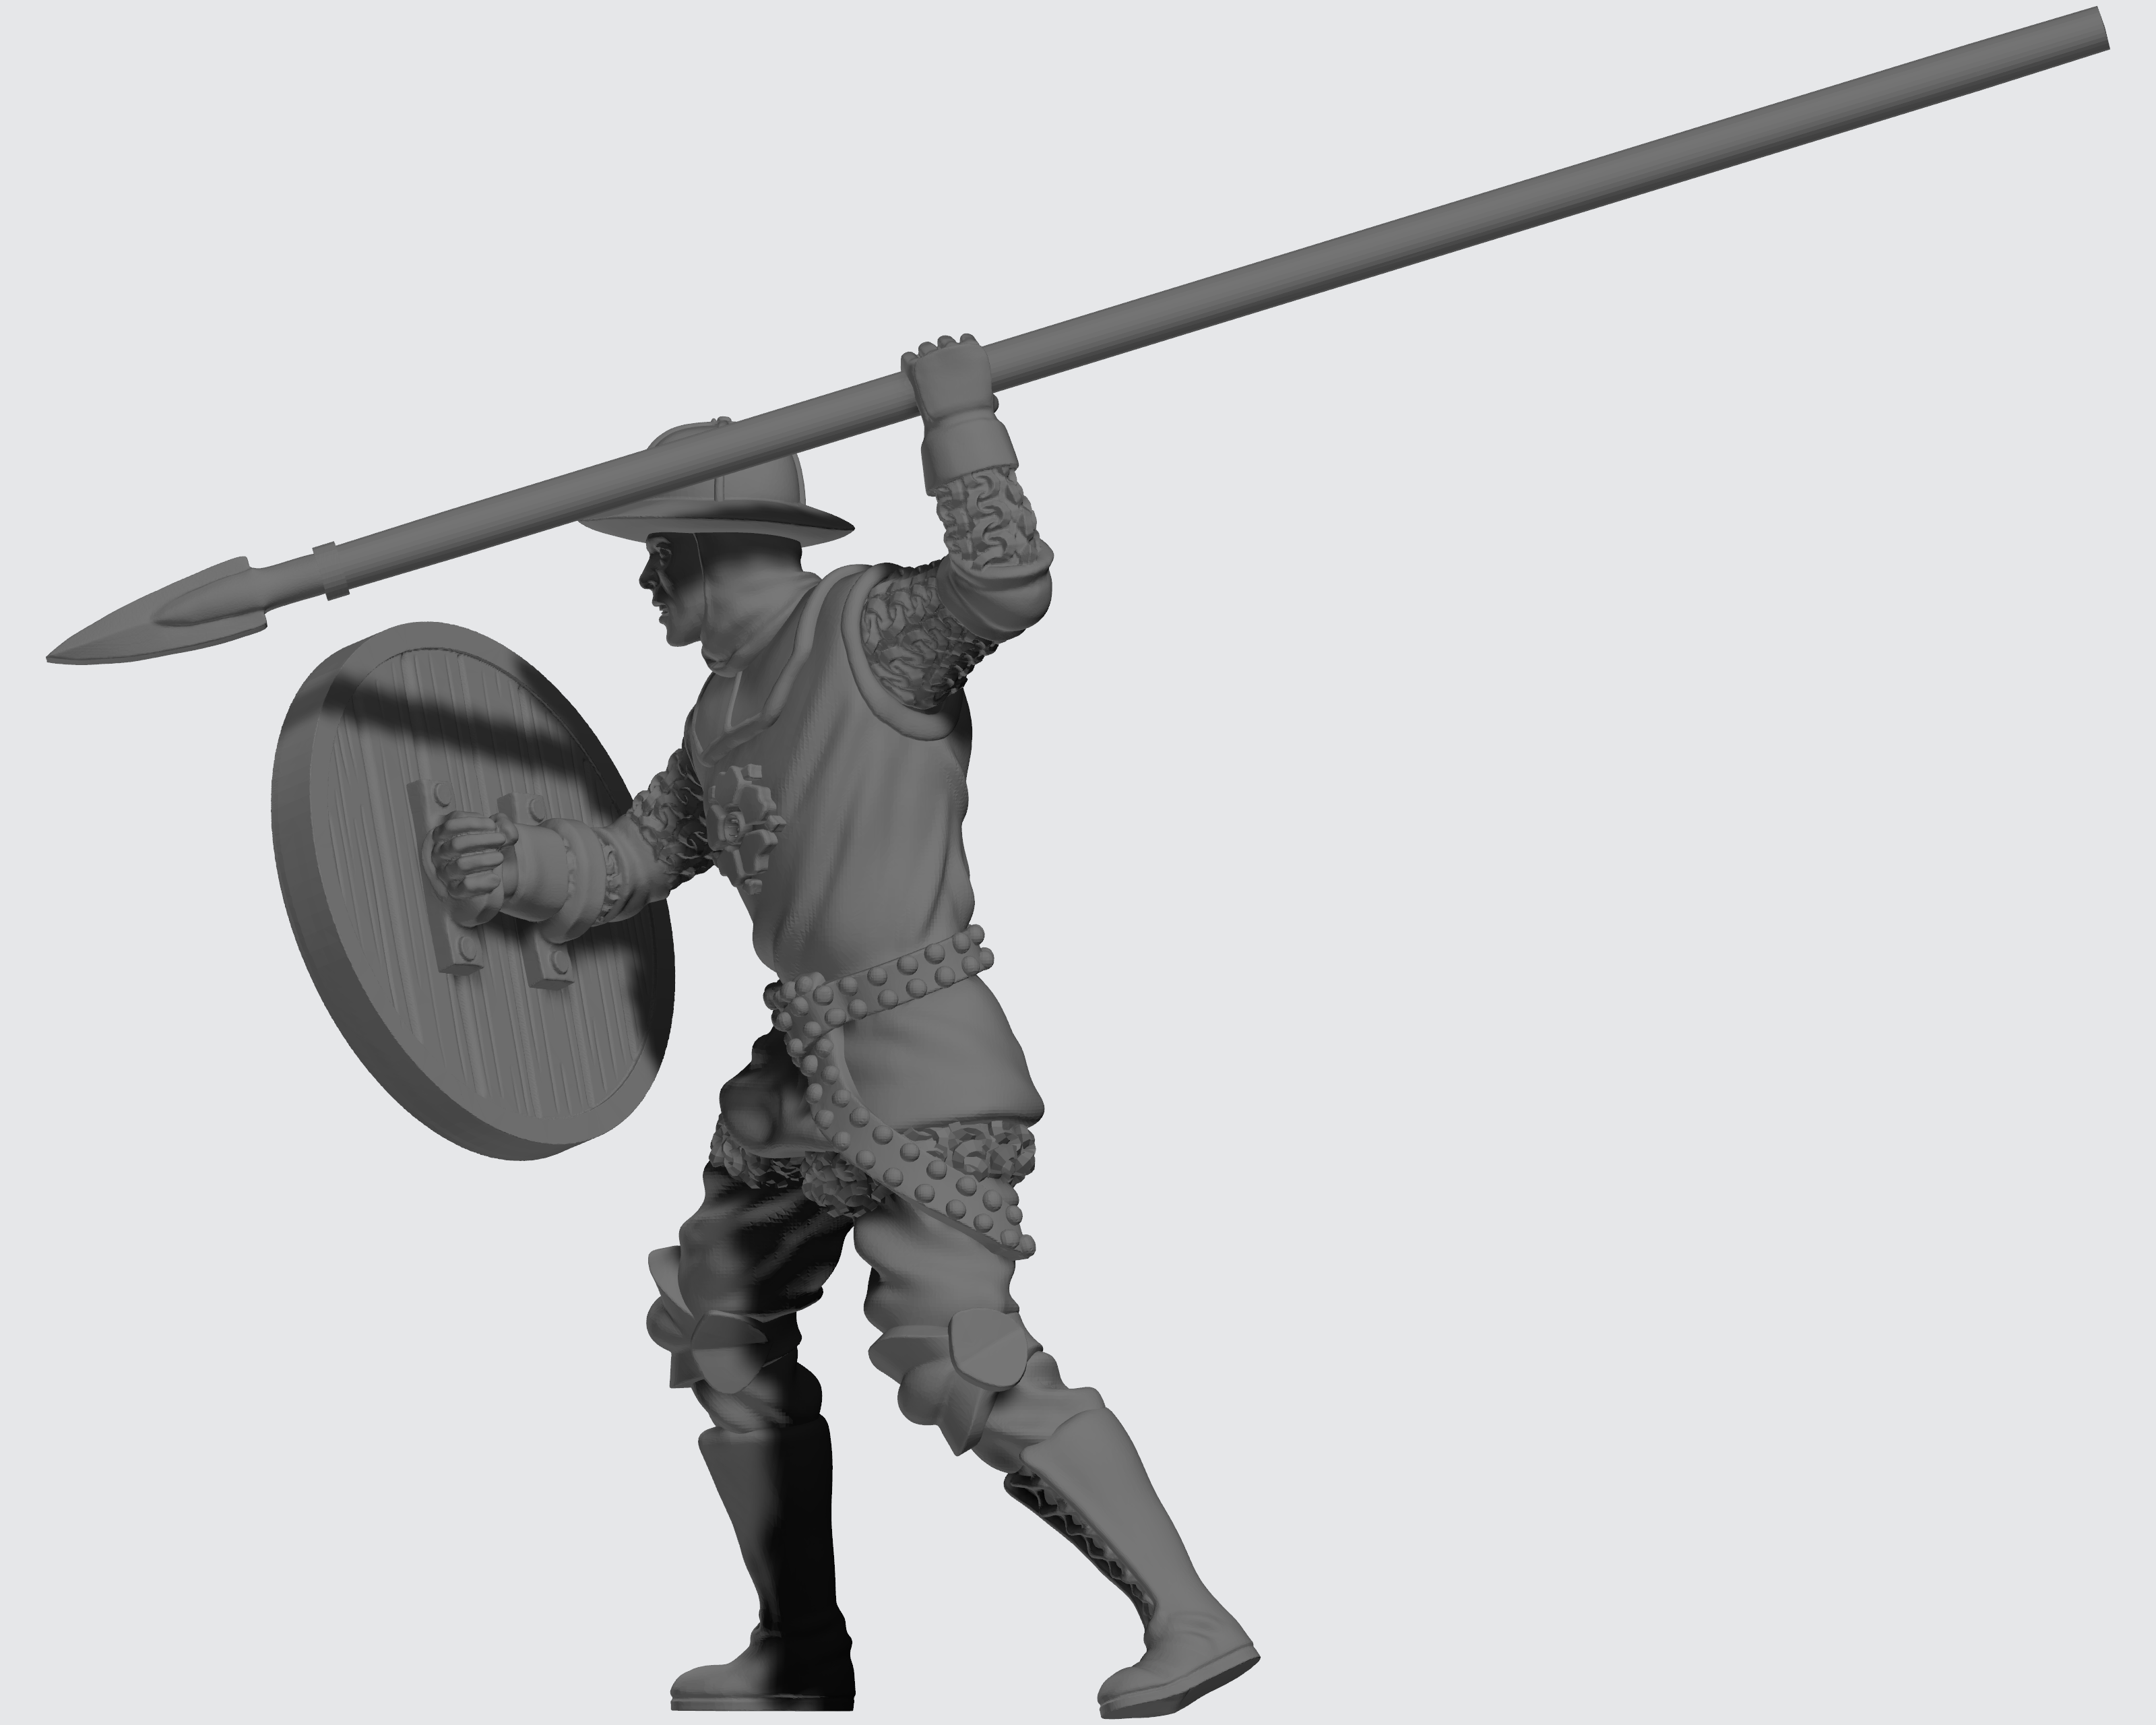 Kingdom of Celesia Group Unit - Pikemen - Pikeman 1 Sculpt